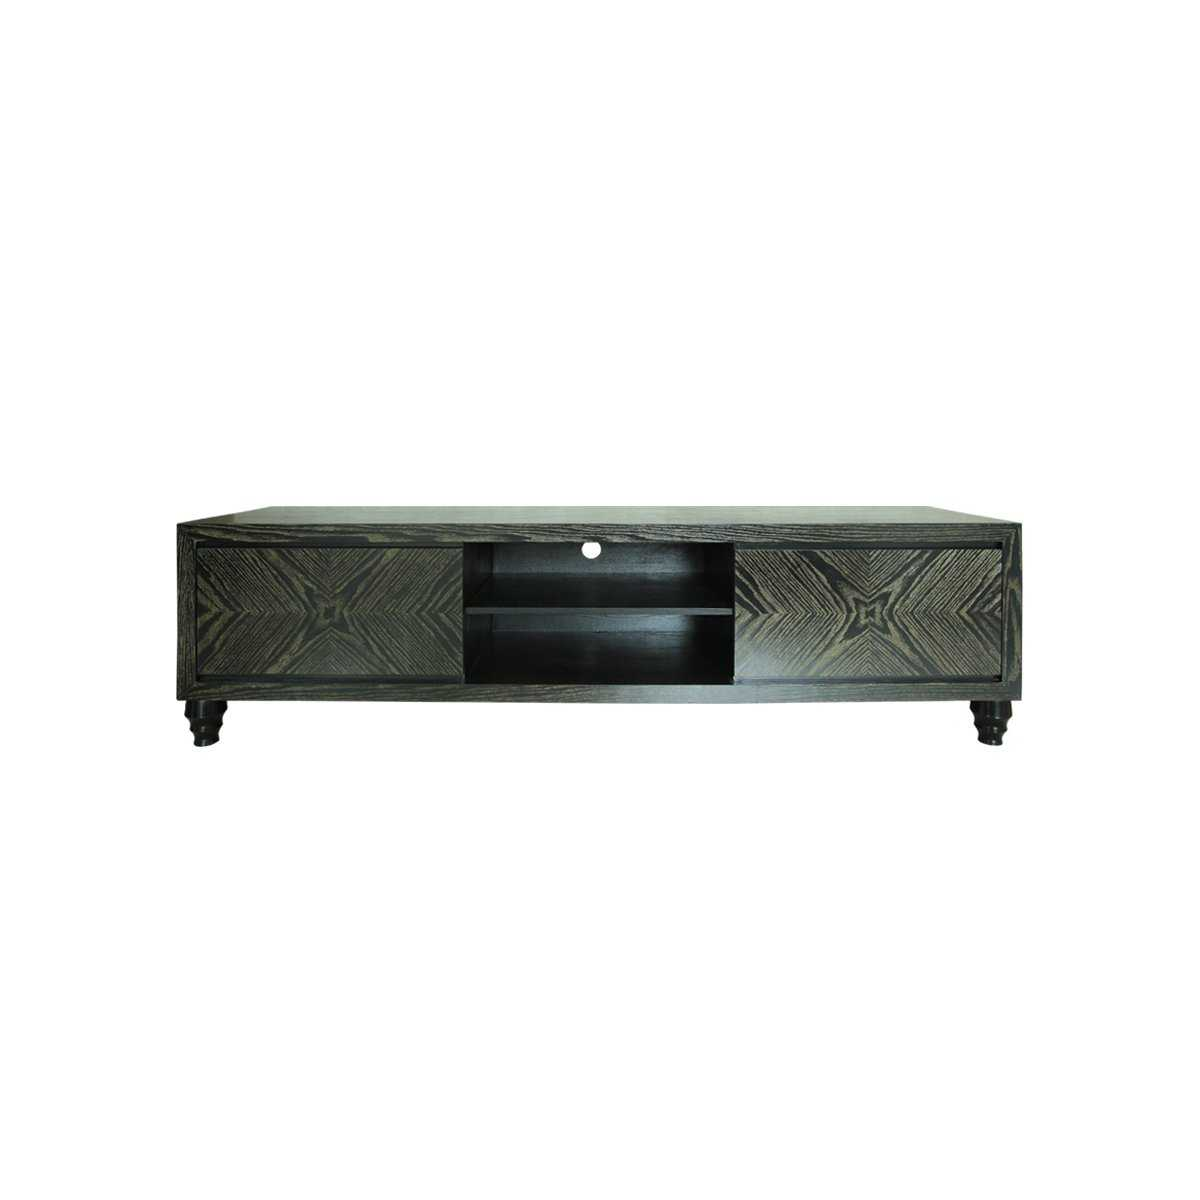 Living room media centers our collections savoy savoy tv bench furniturestorage systems and unitstv